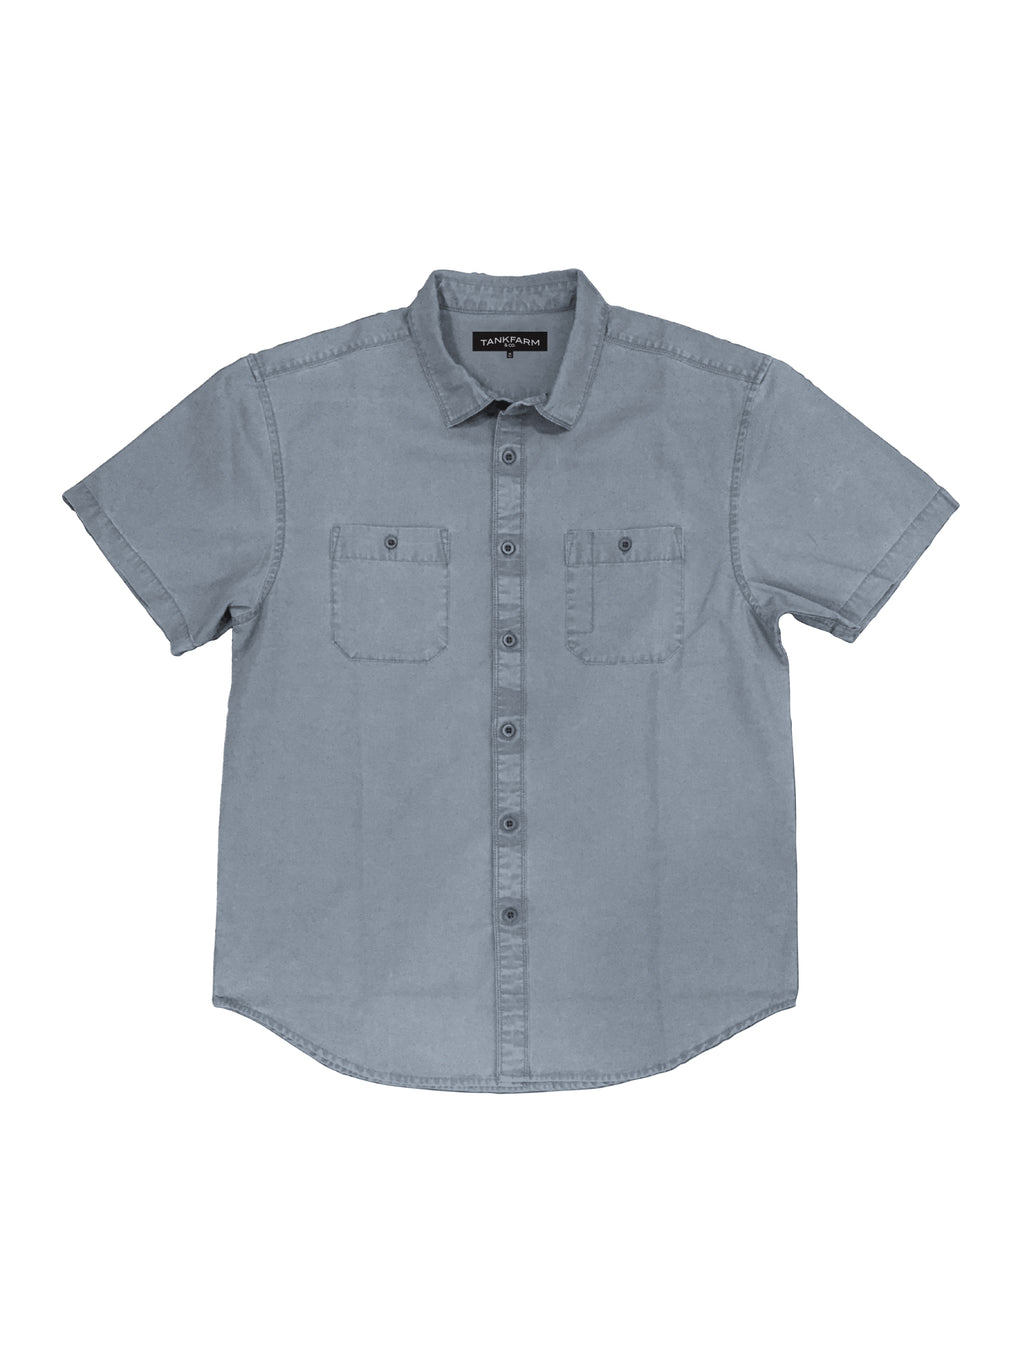 CHAMBRE WORK SHIRT - Anderson Bros Design and Supply